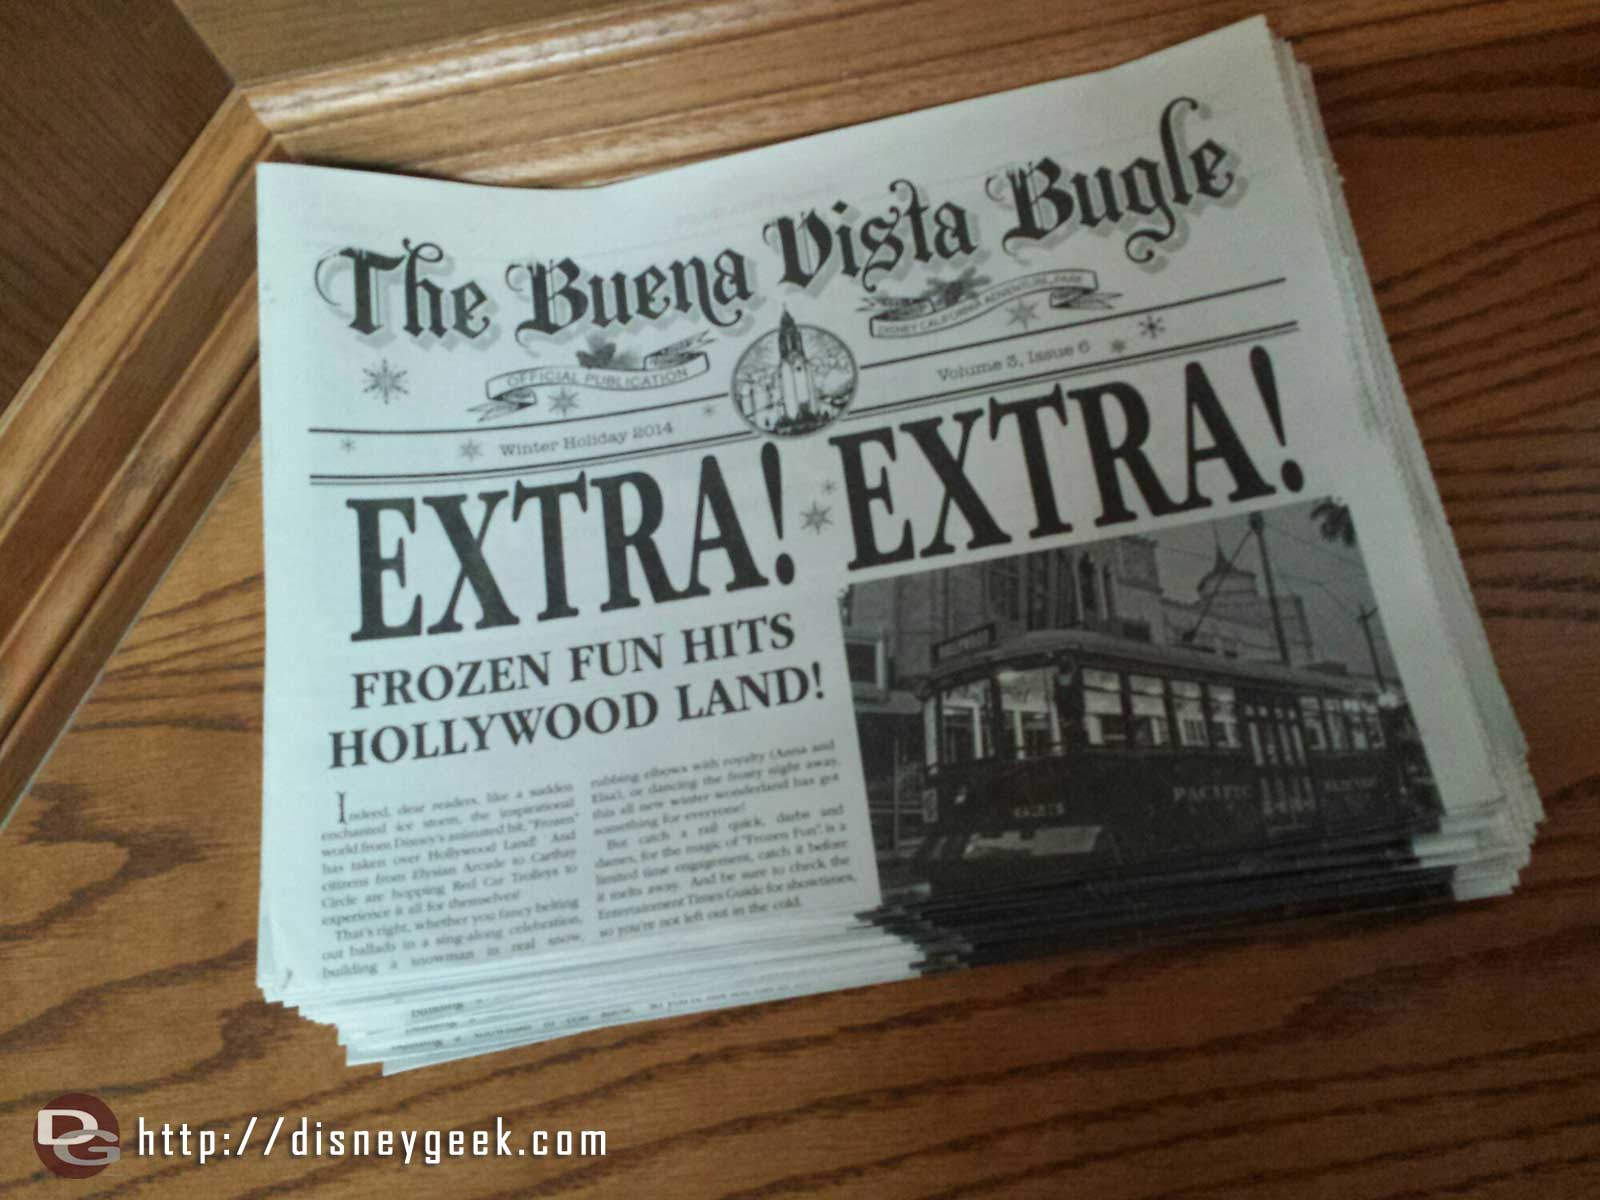 Winter edition of the Buena Vista Bugle features #FrozenFun